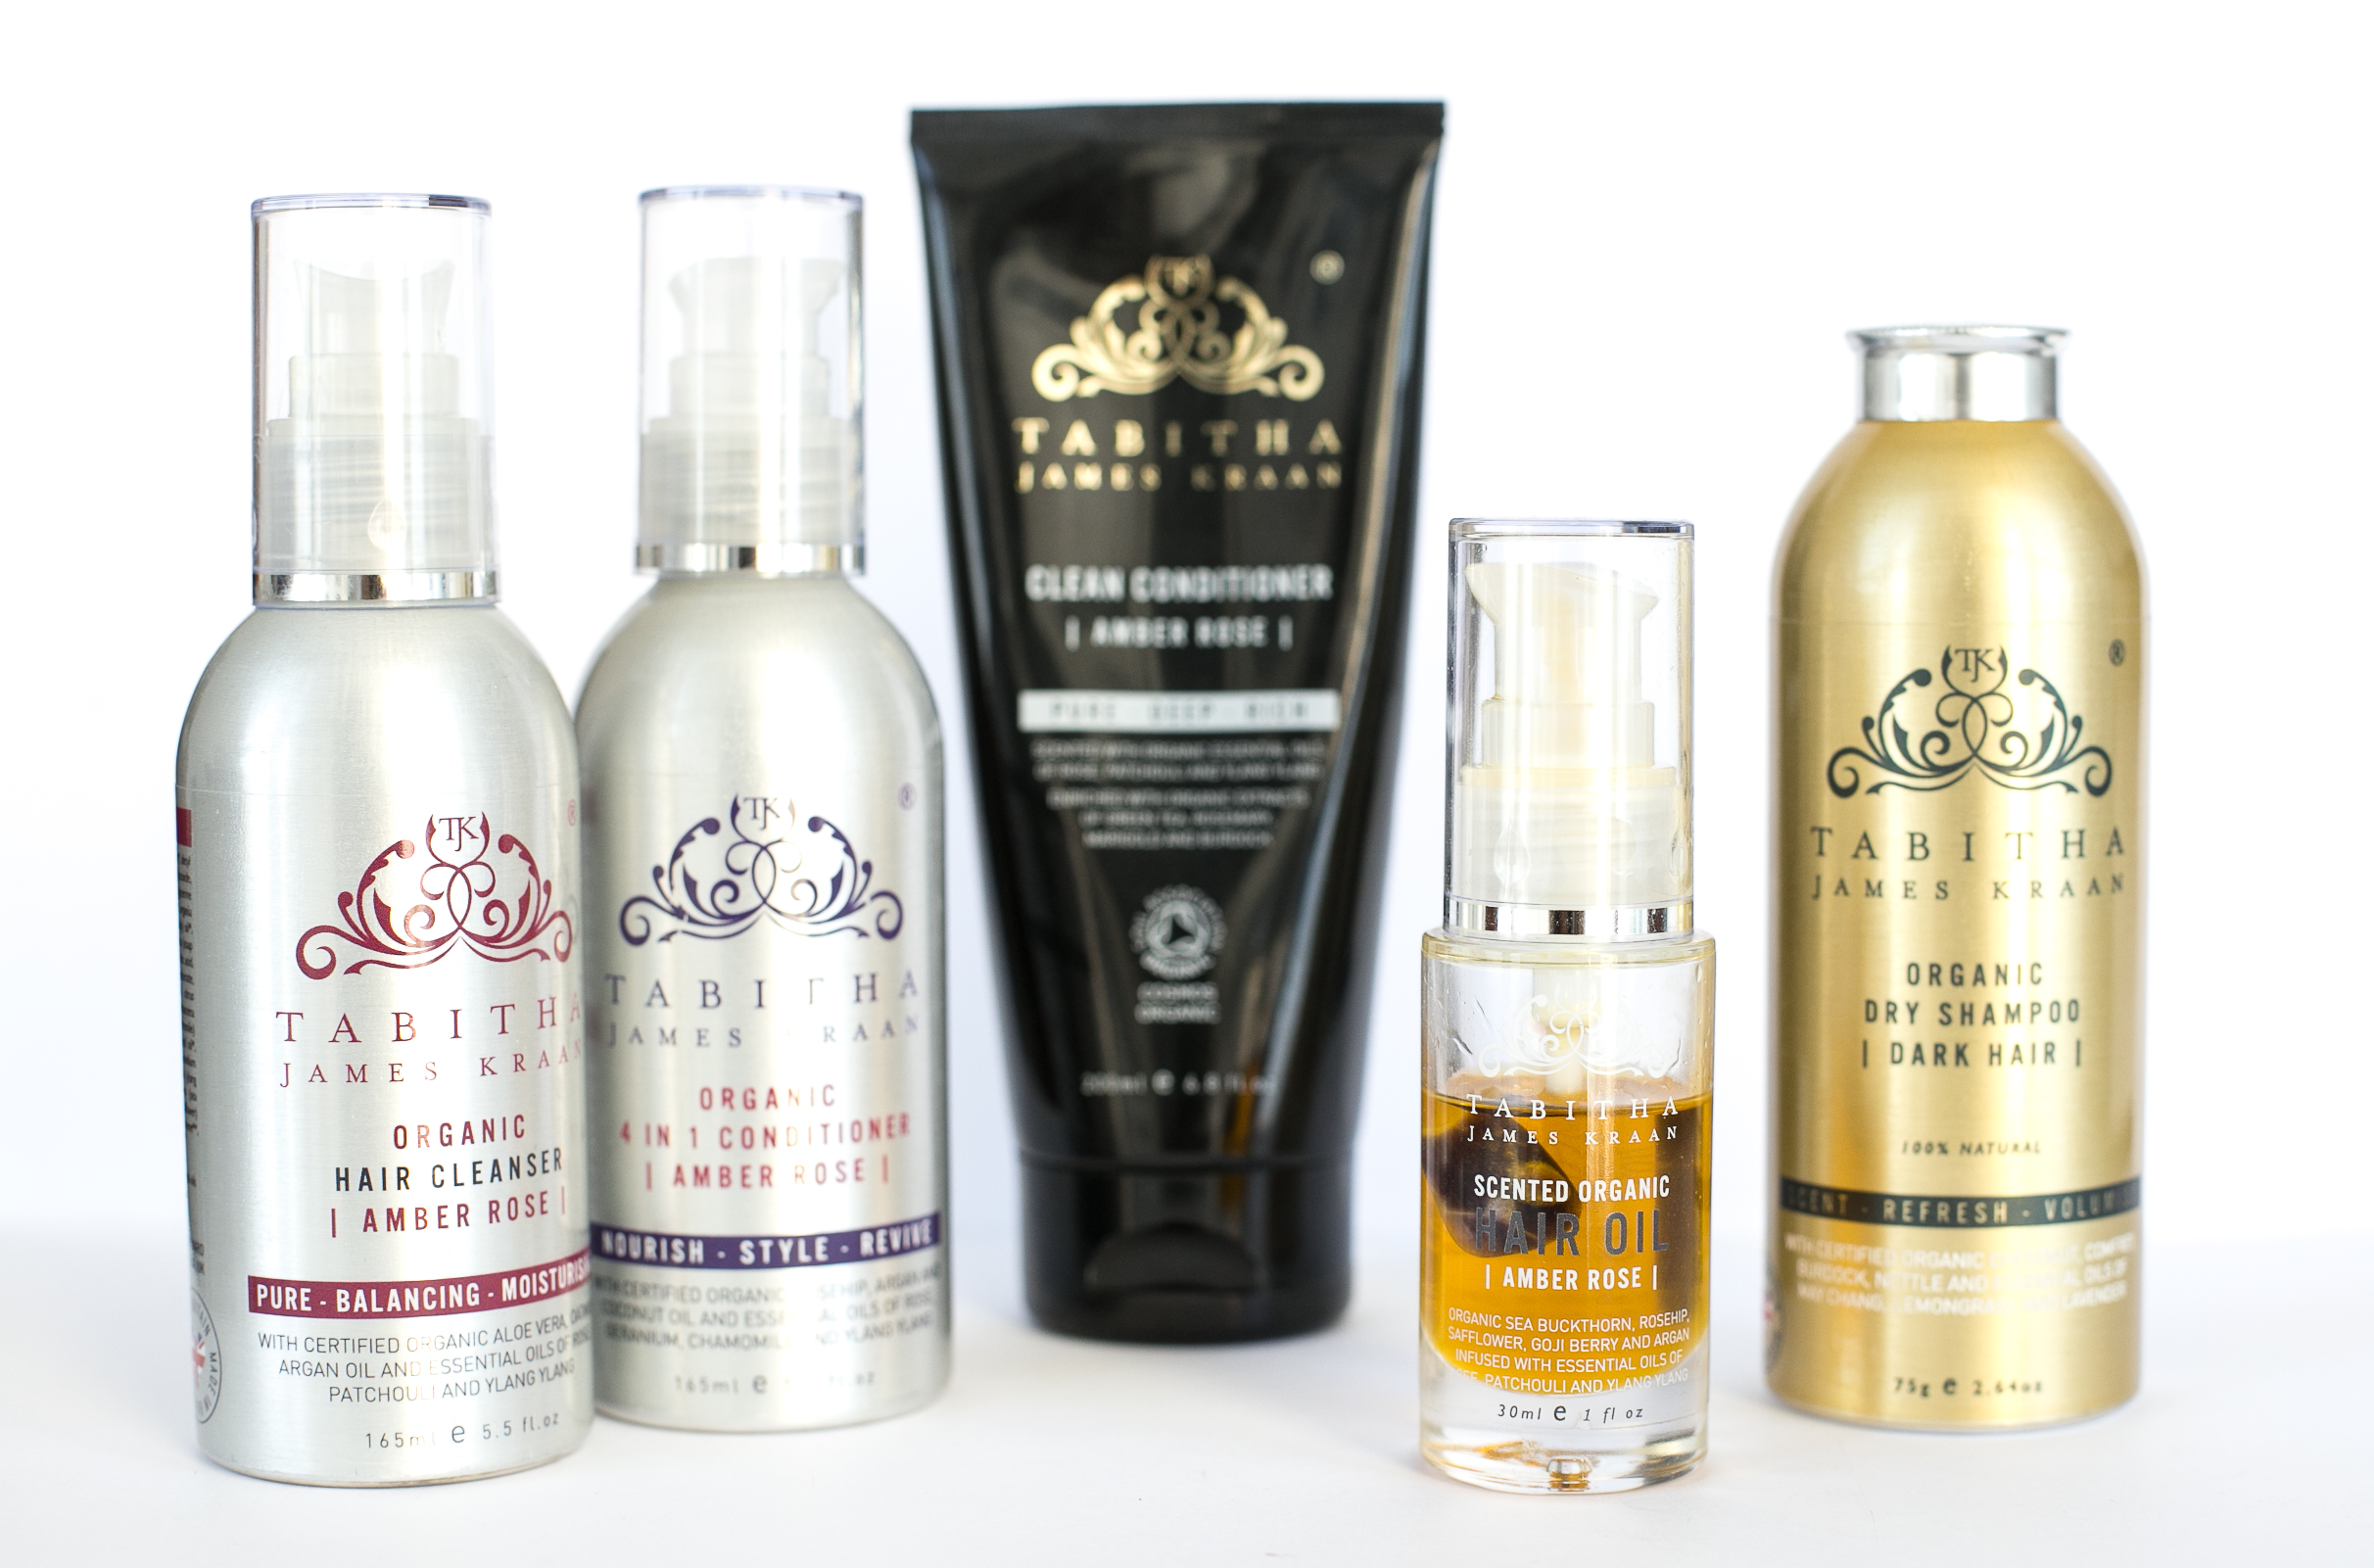 Tabitha James Kraan Organic Hair Products